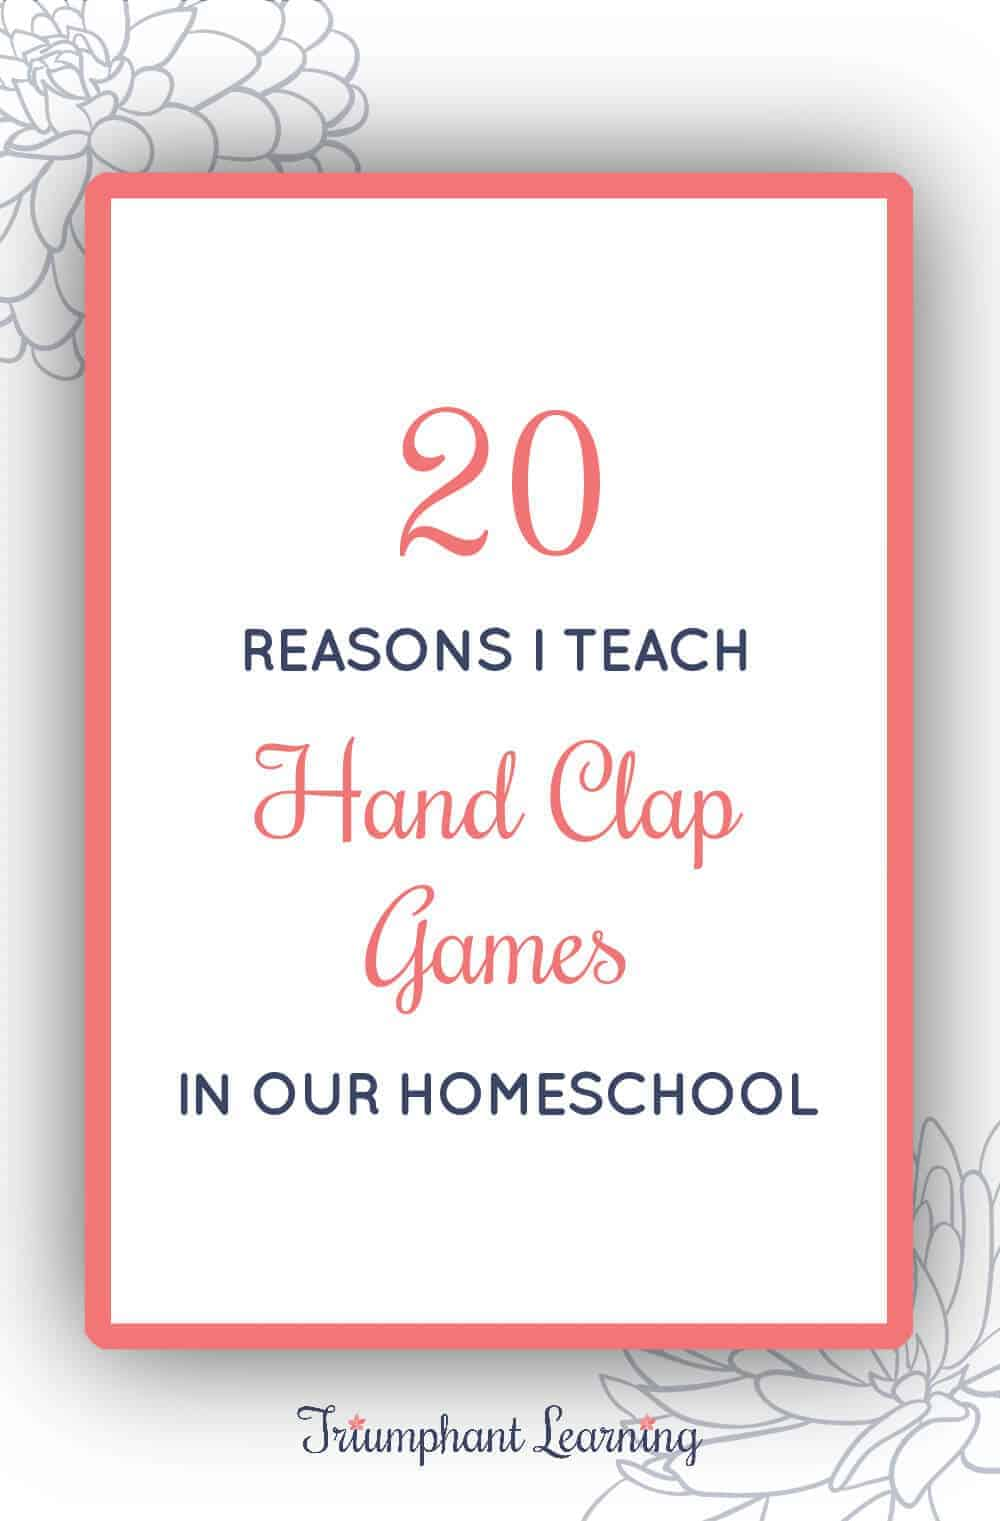 There are a lot of great reasons to teach hand clap games to your children. Here are 20 of the reasons I teach them to my children. via @TriLearning